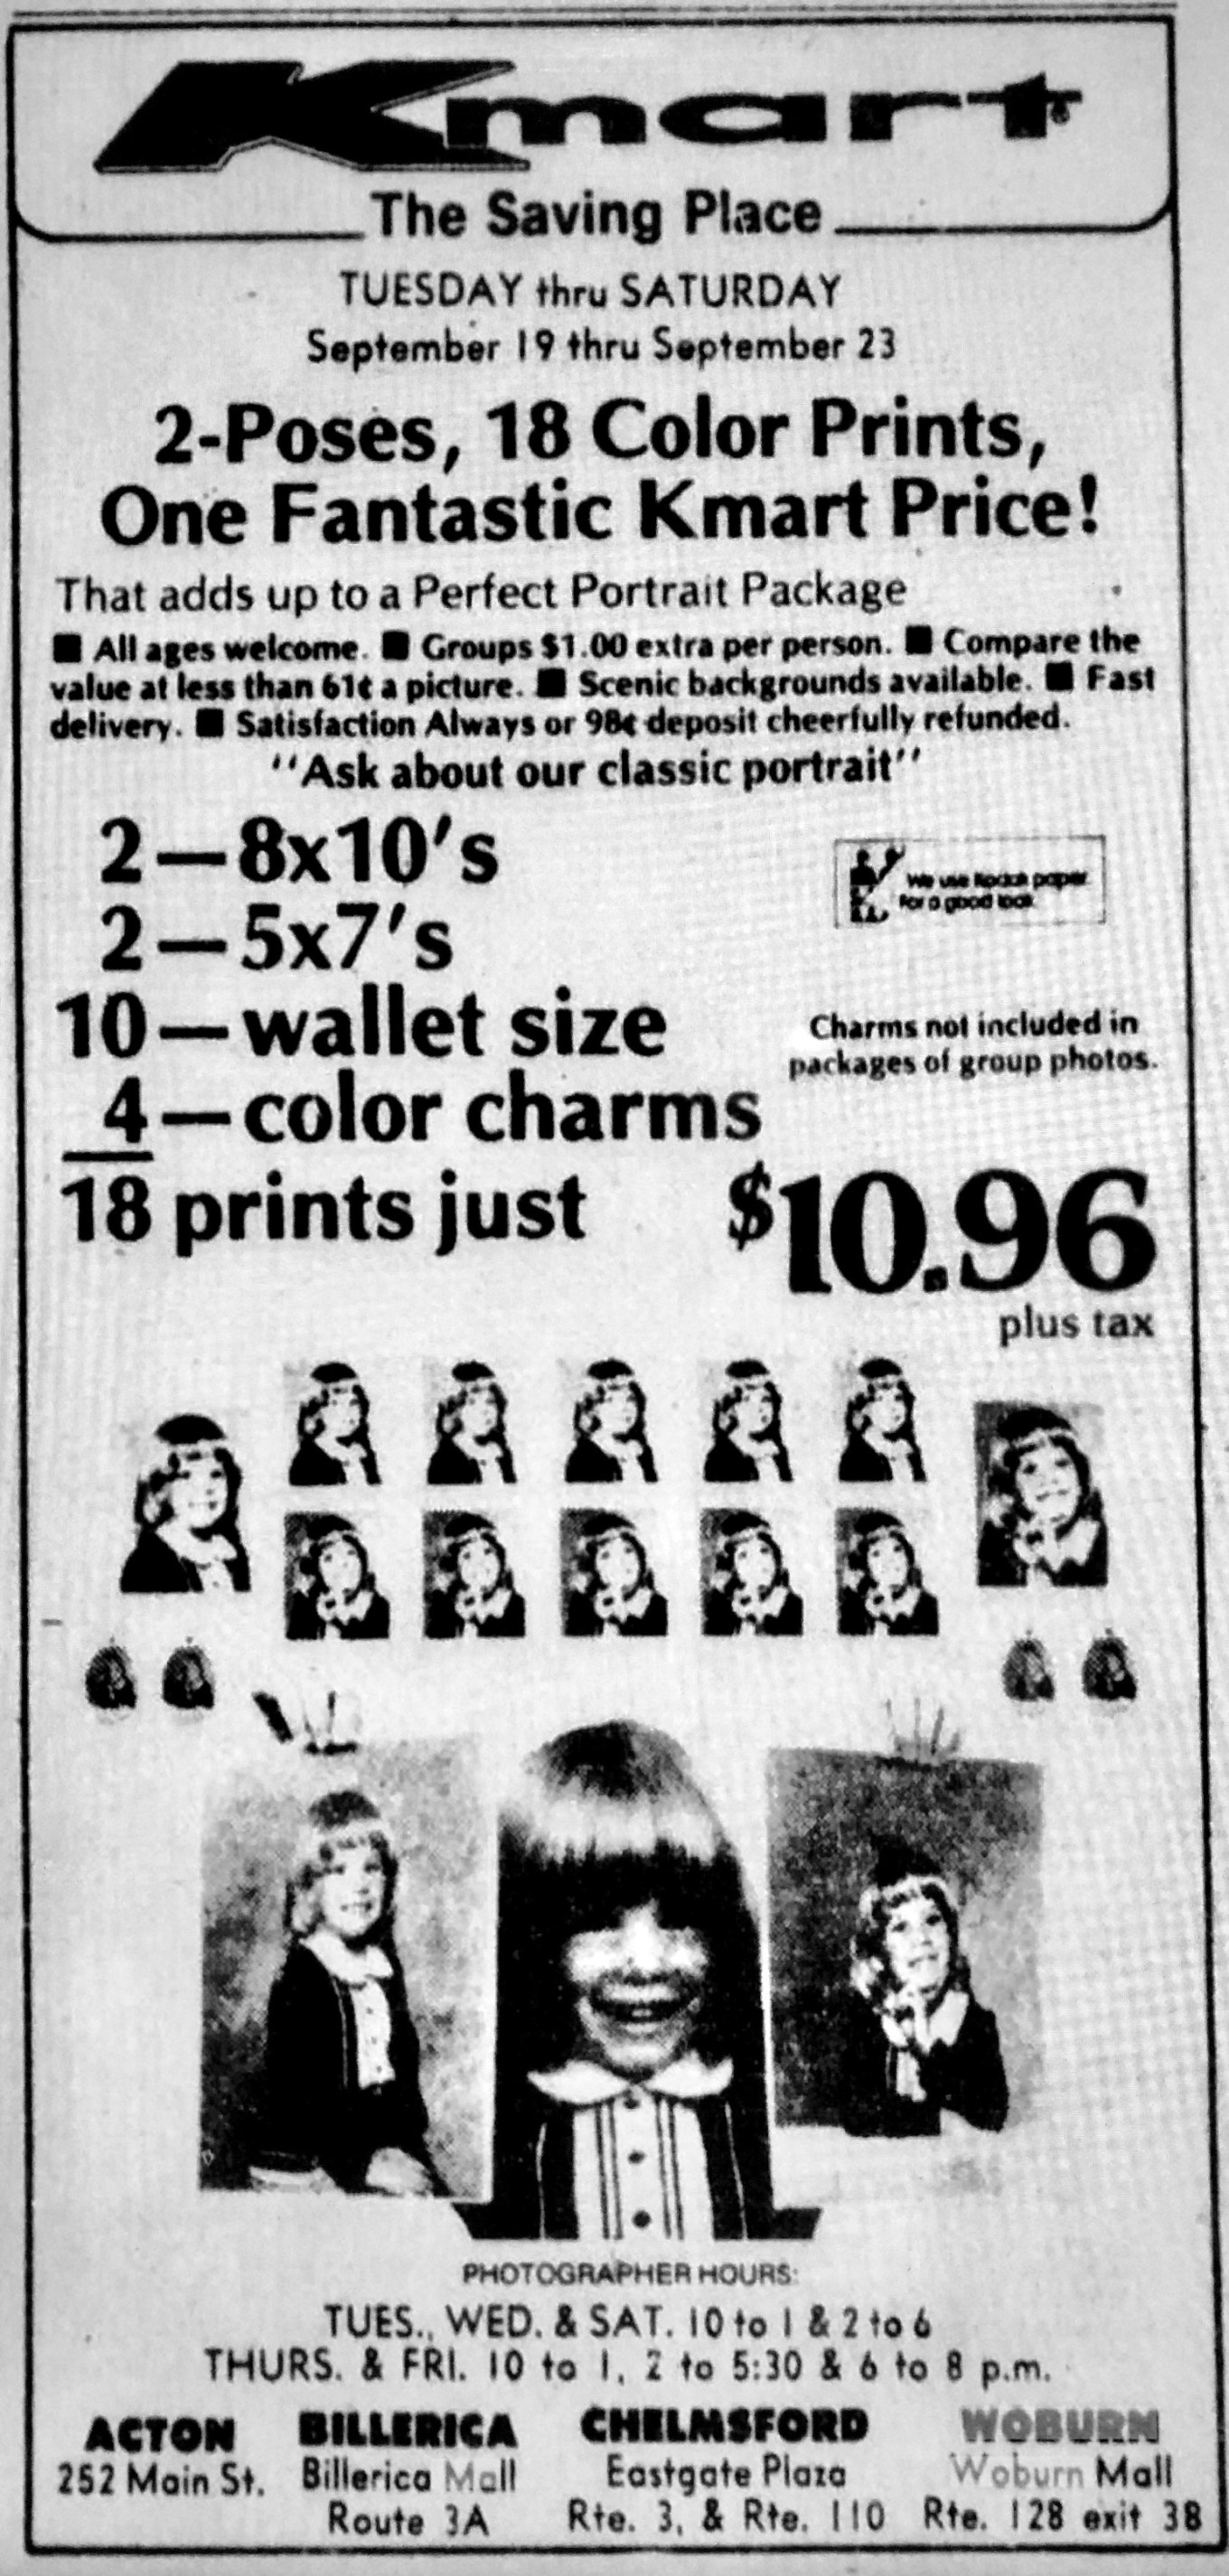 Kmart picture ad 1978